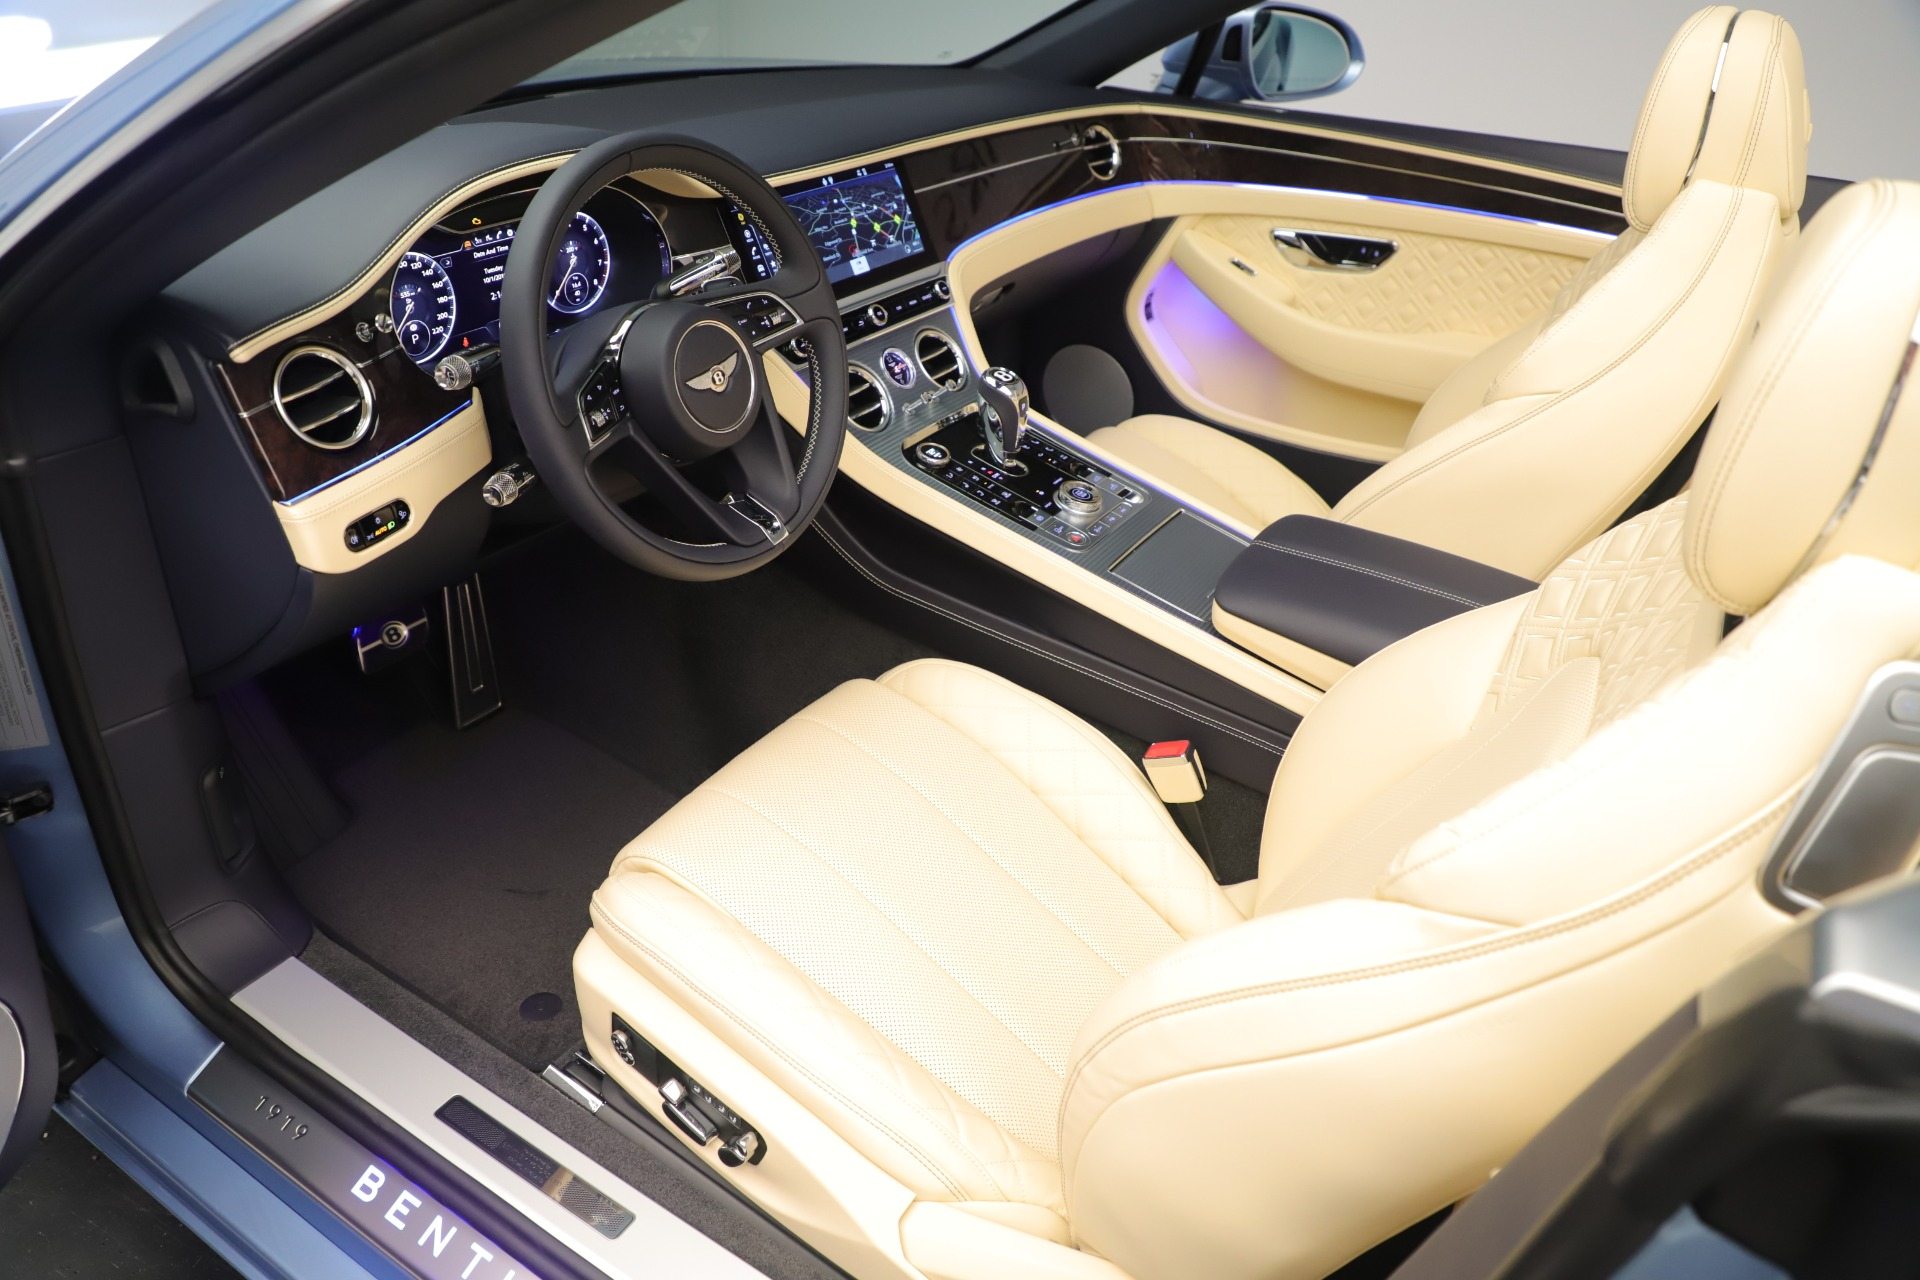 Used 2020 Bentley Continental GTC V8 For Sale In Westport, CT 3472_p26